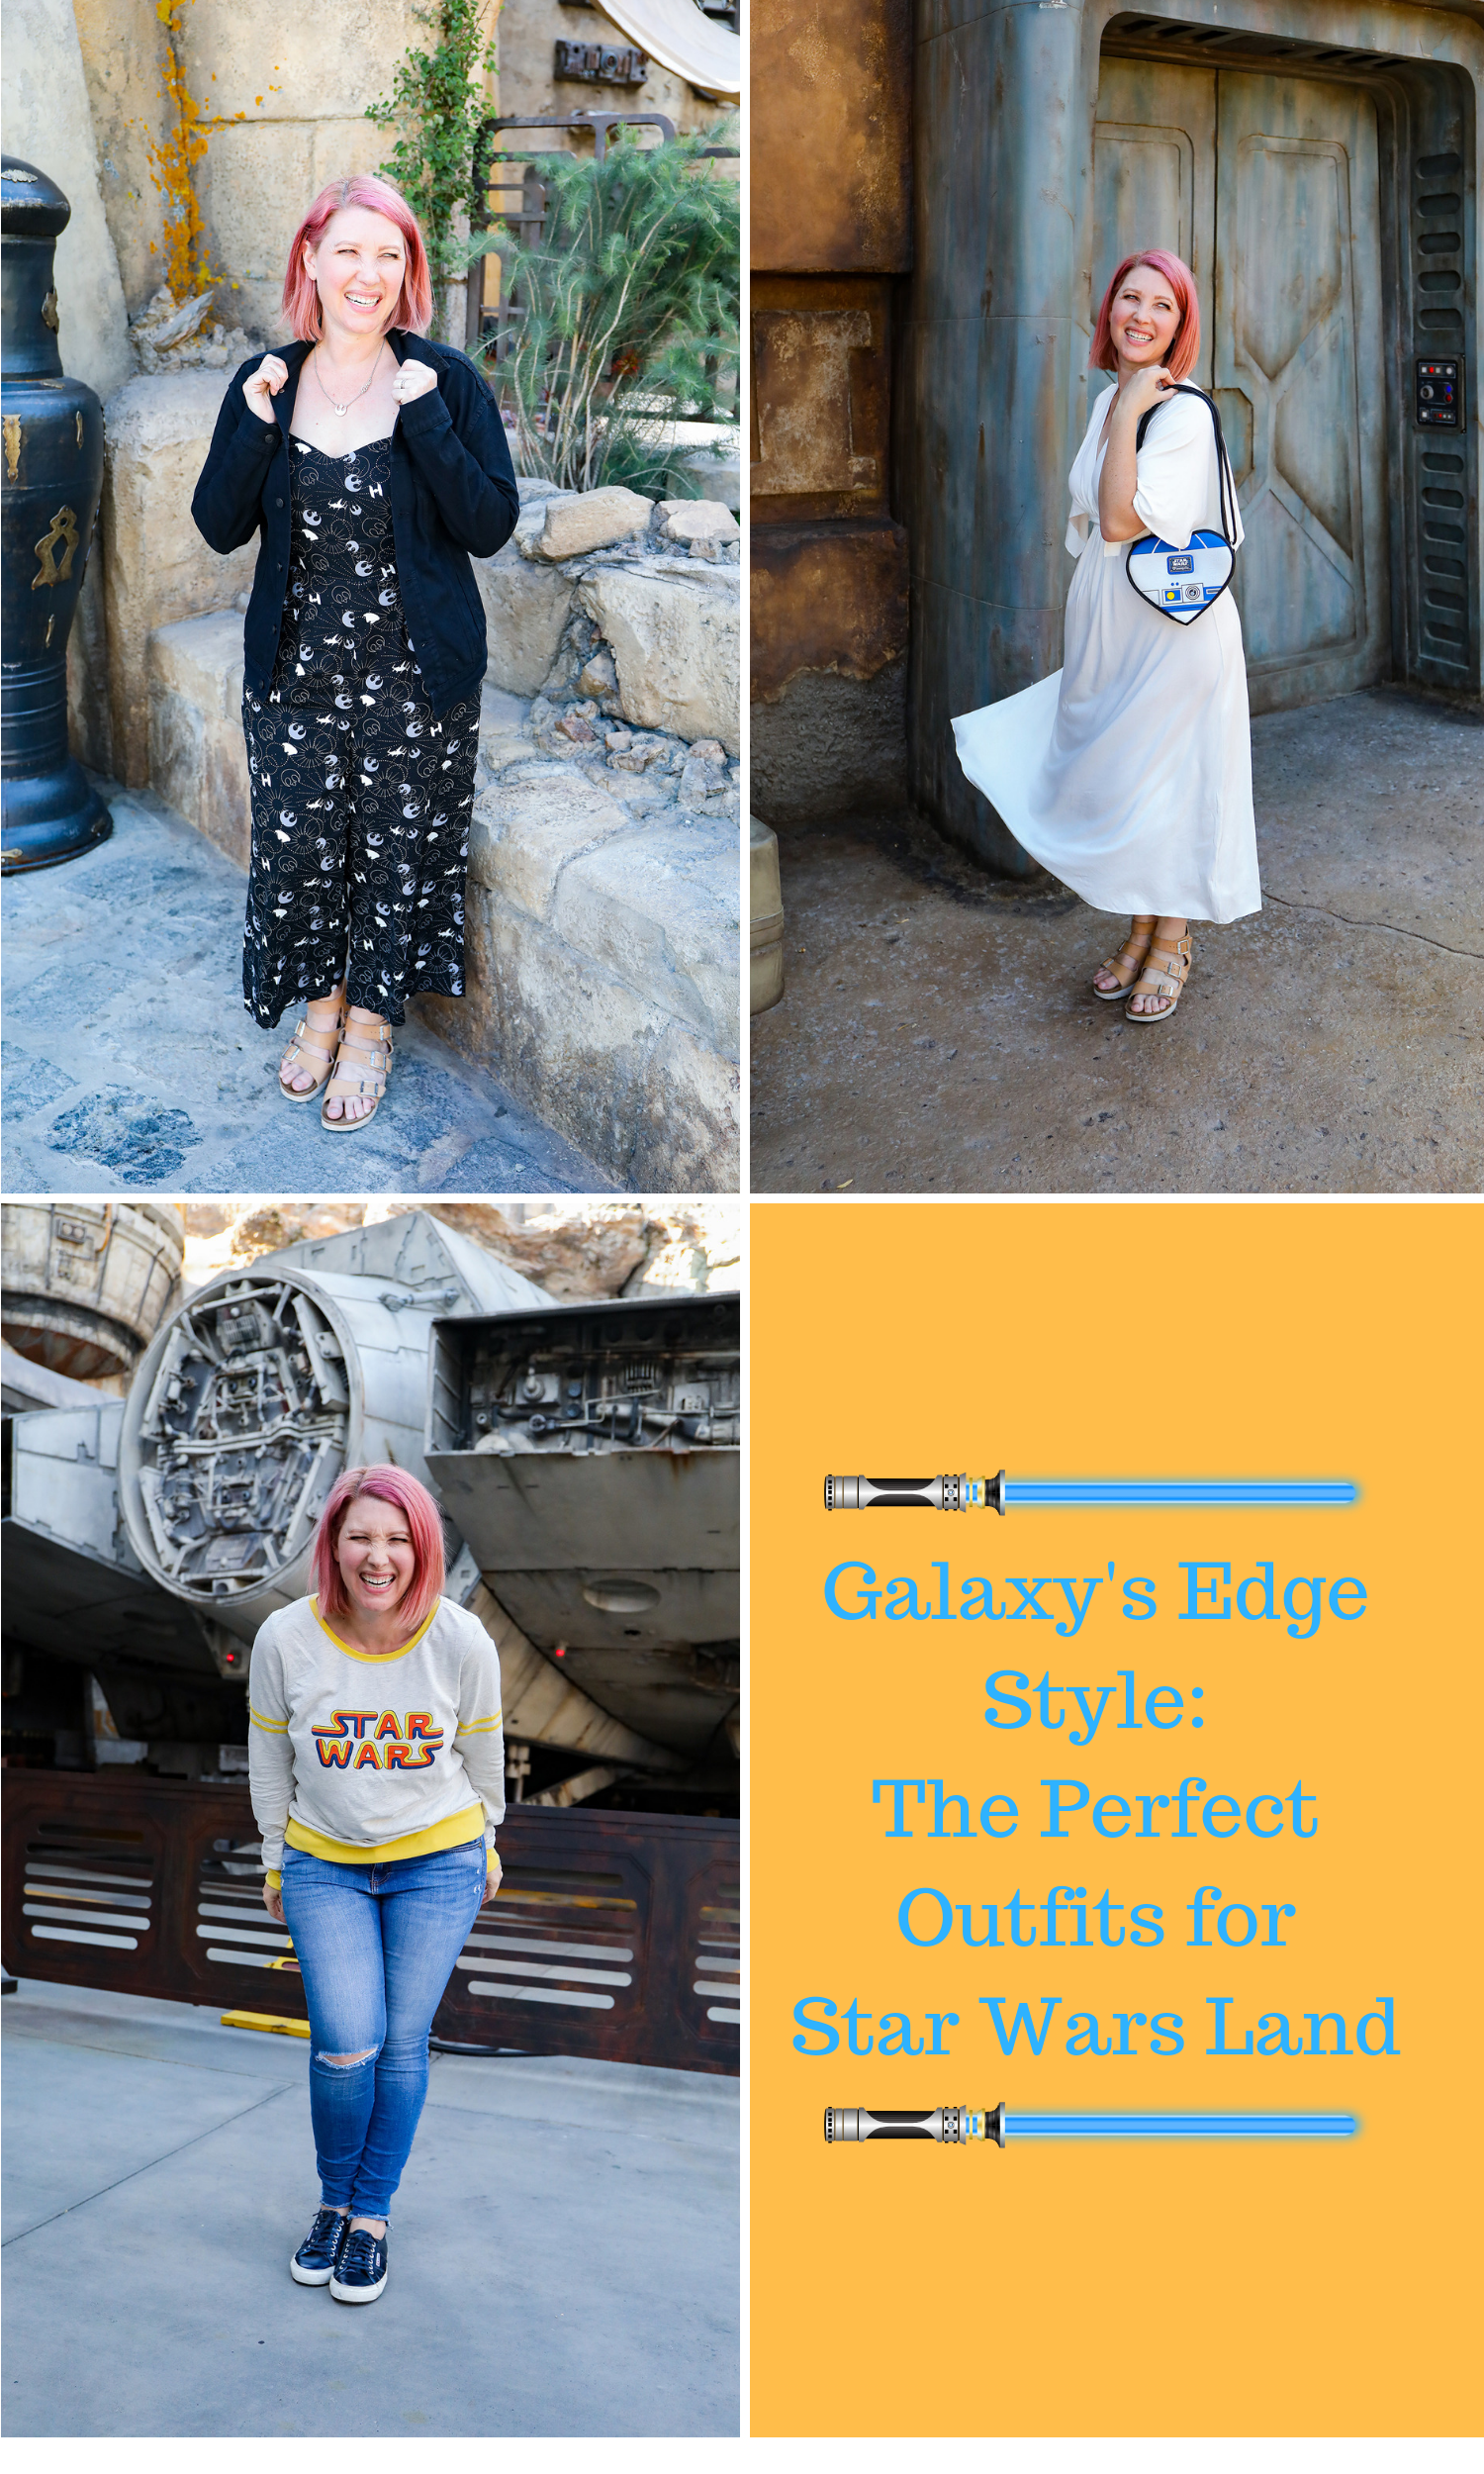 Looking for the best Disneyland Outfits to wear inside Galaxy's Edge? This style guide has you covered!